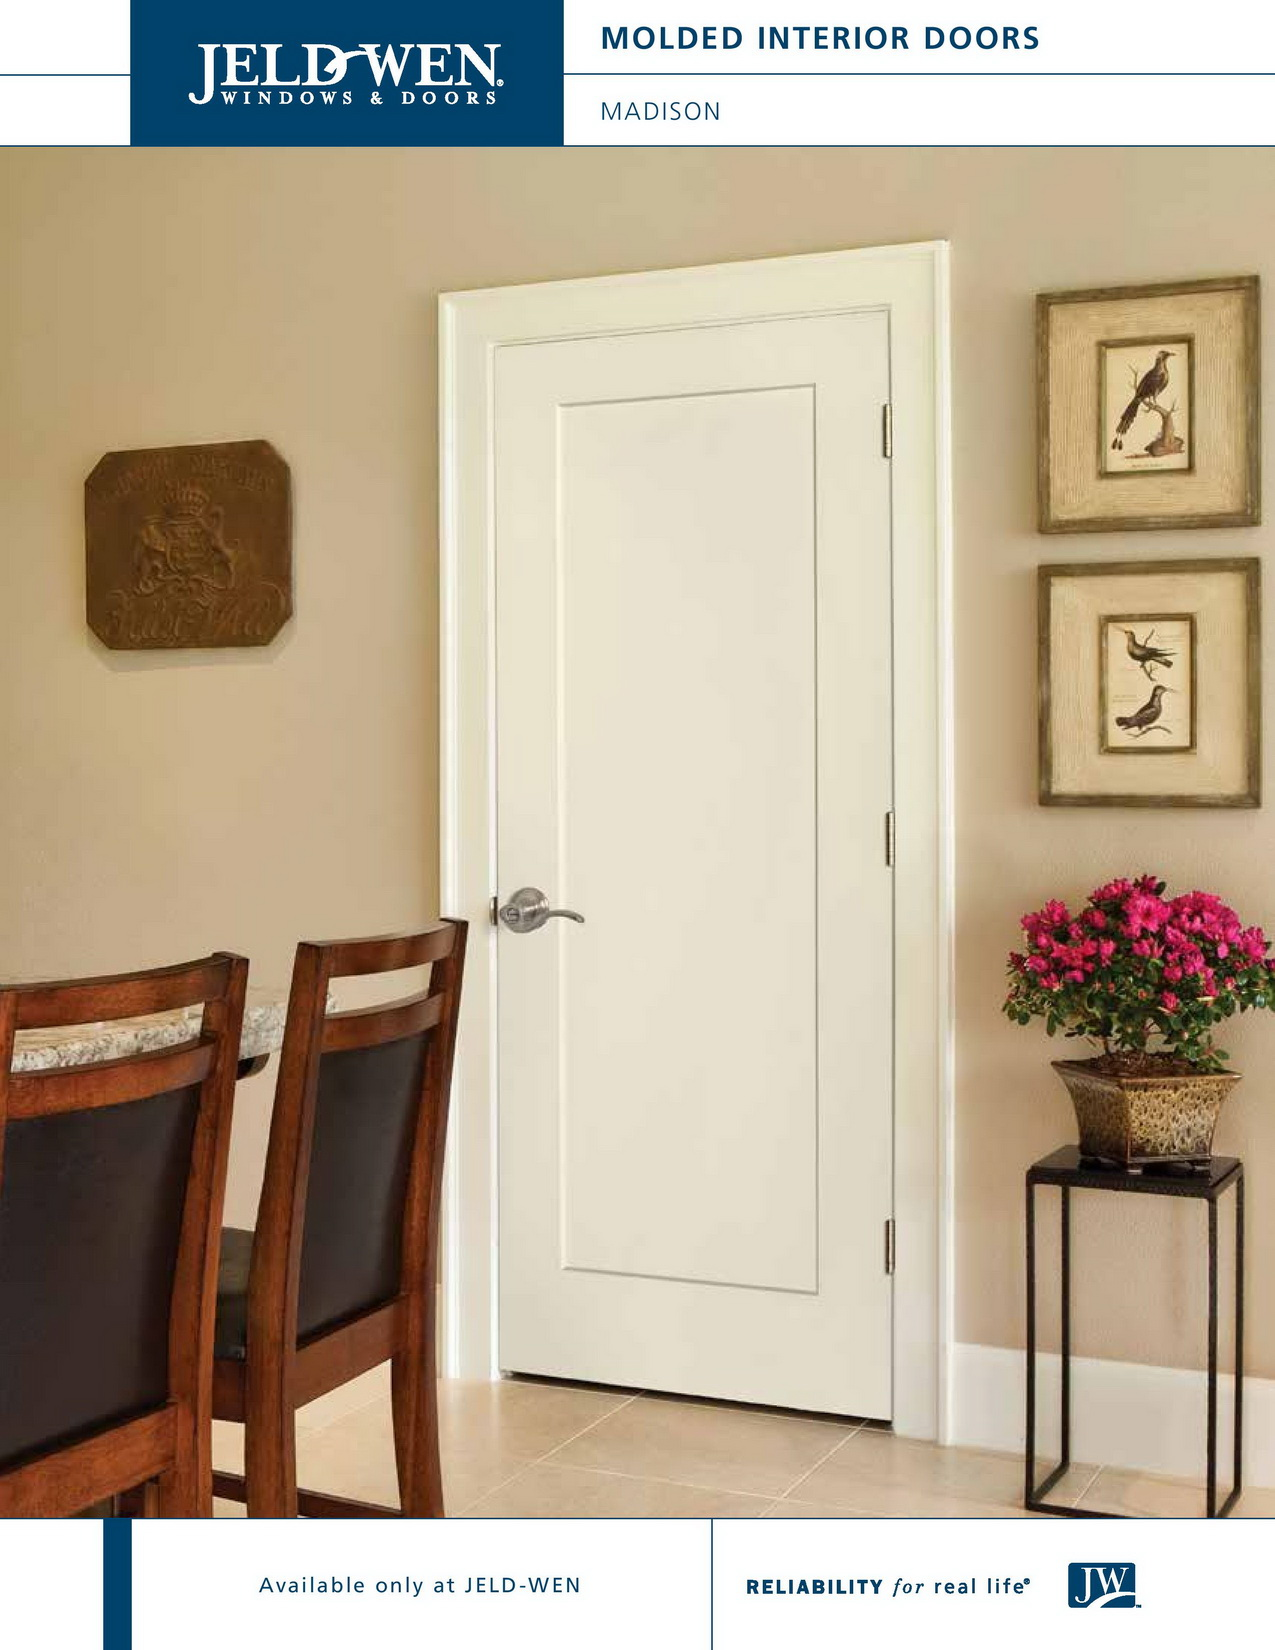 Jeld Wen Monroe Interior Door